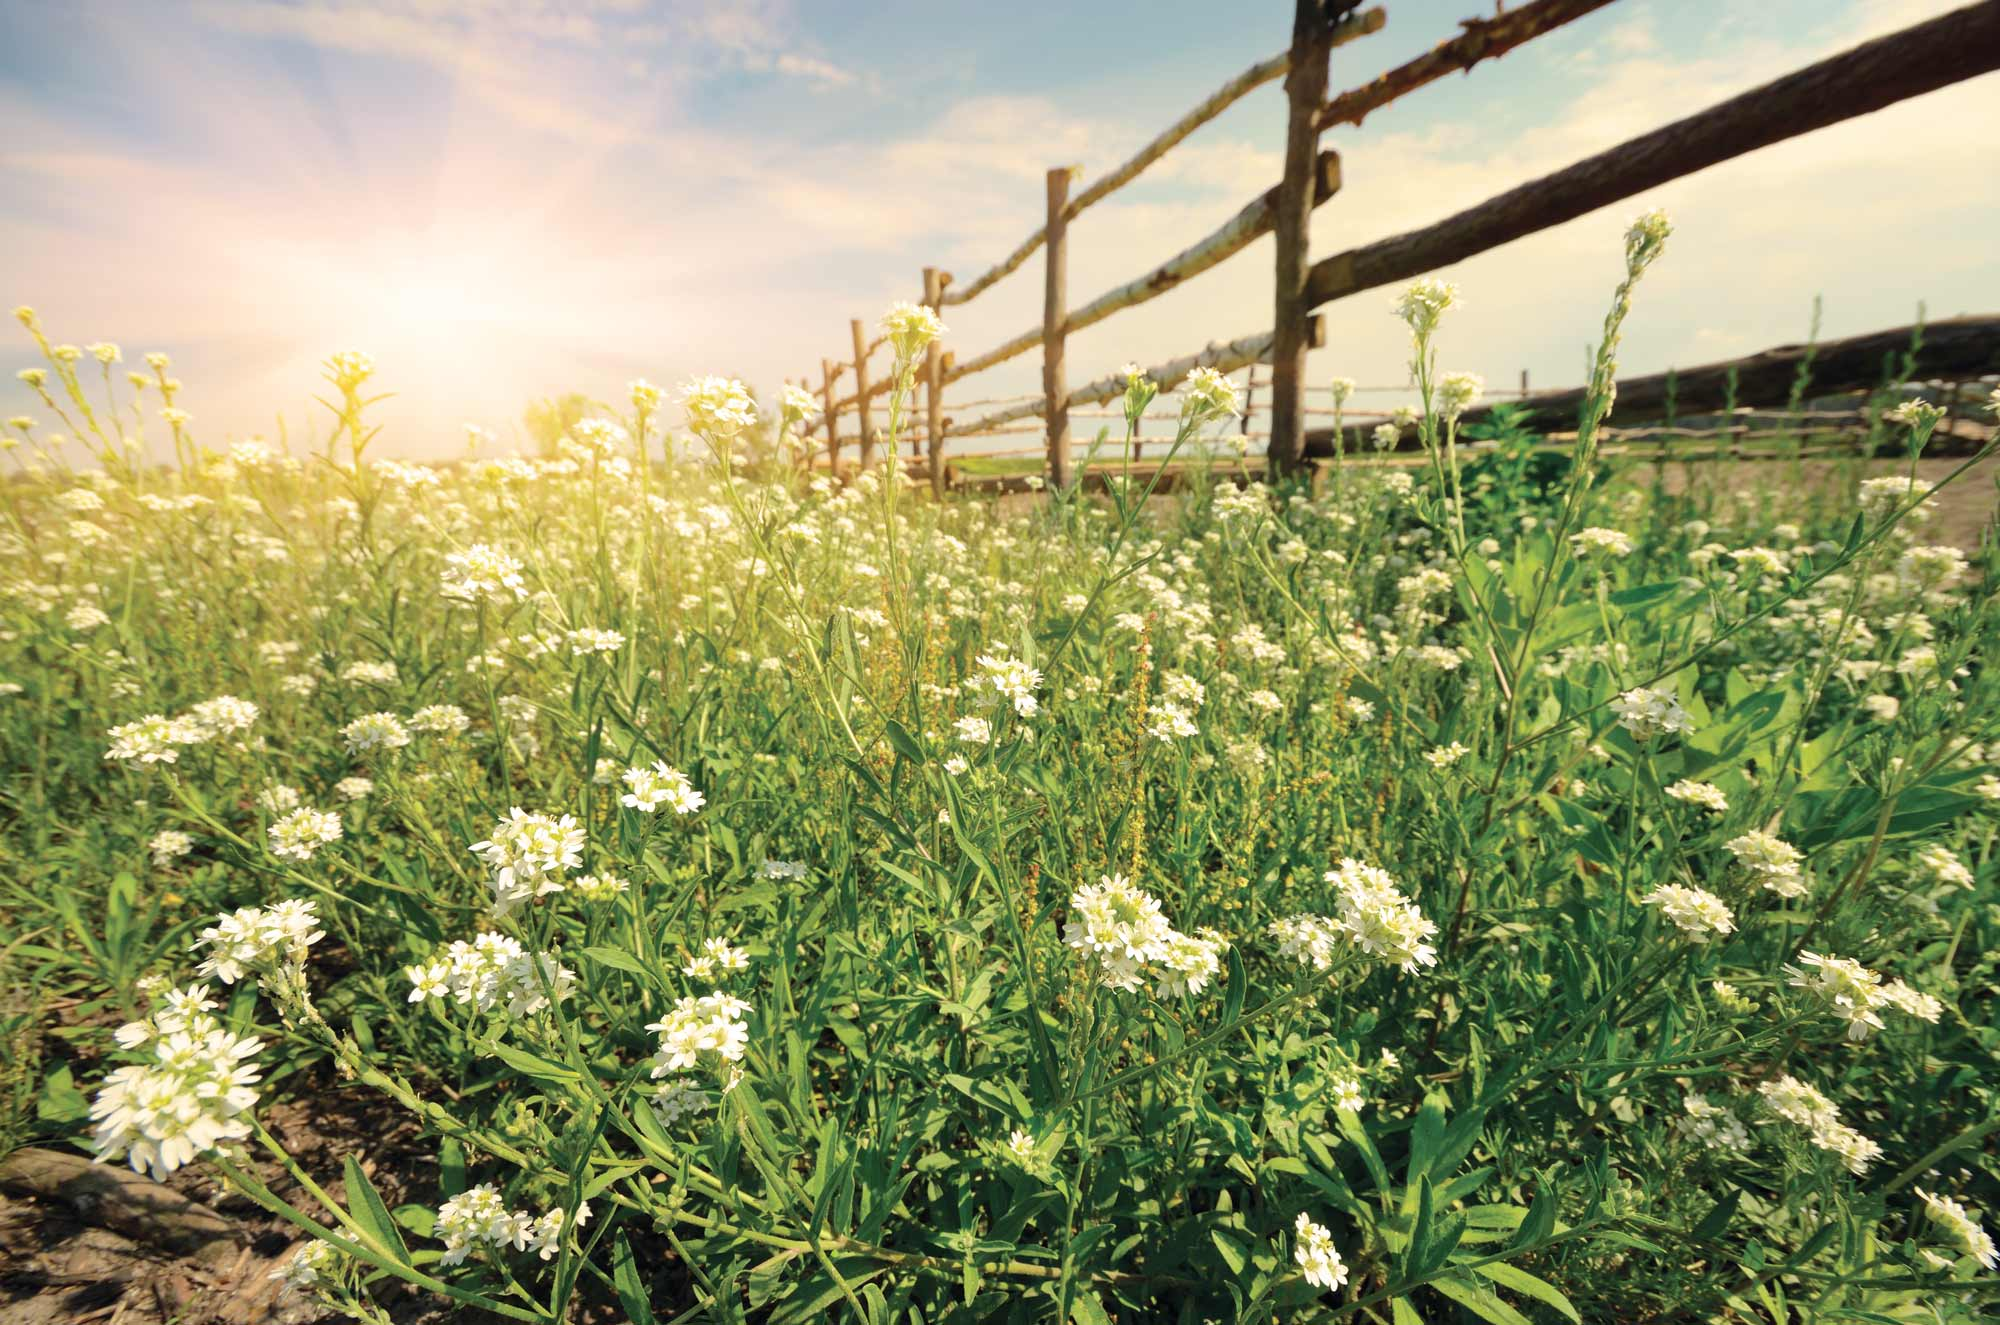 The sun peering through a field of flowers